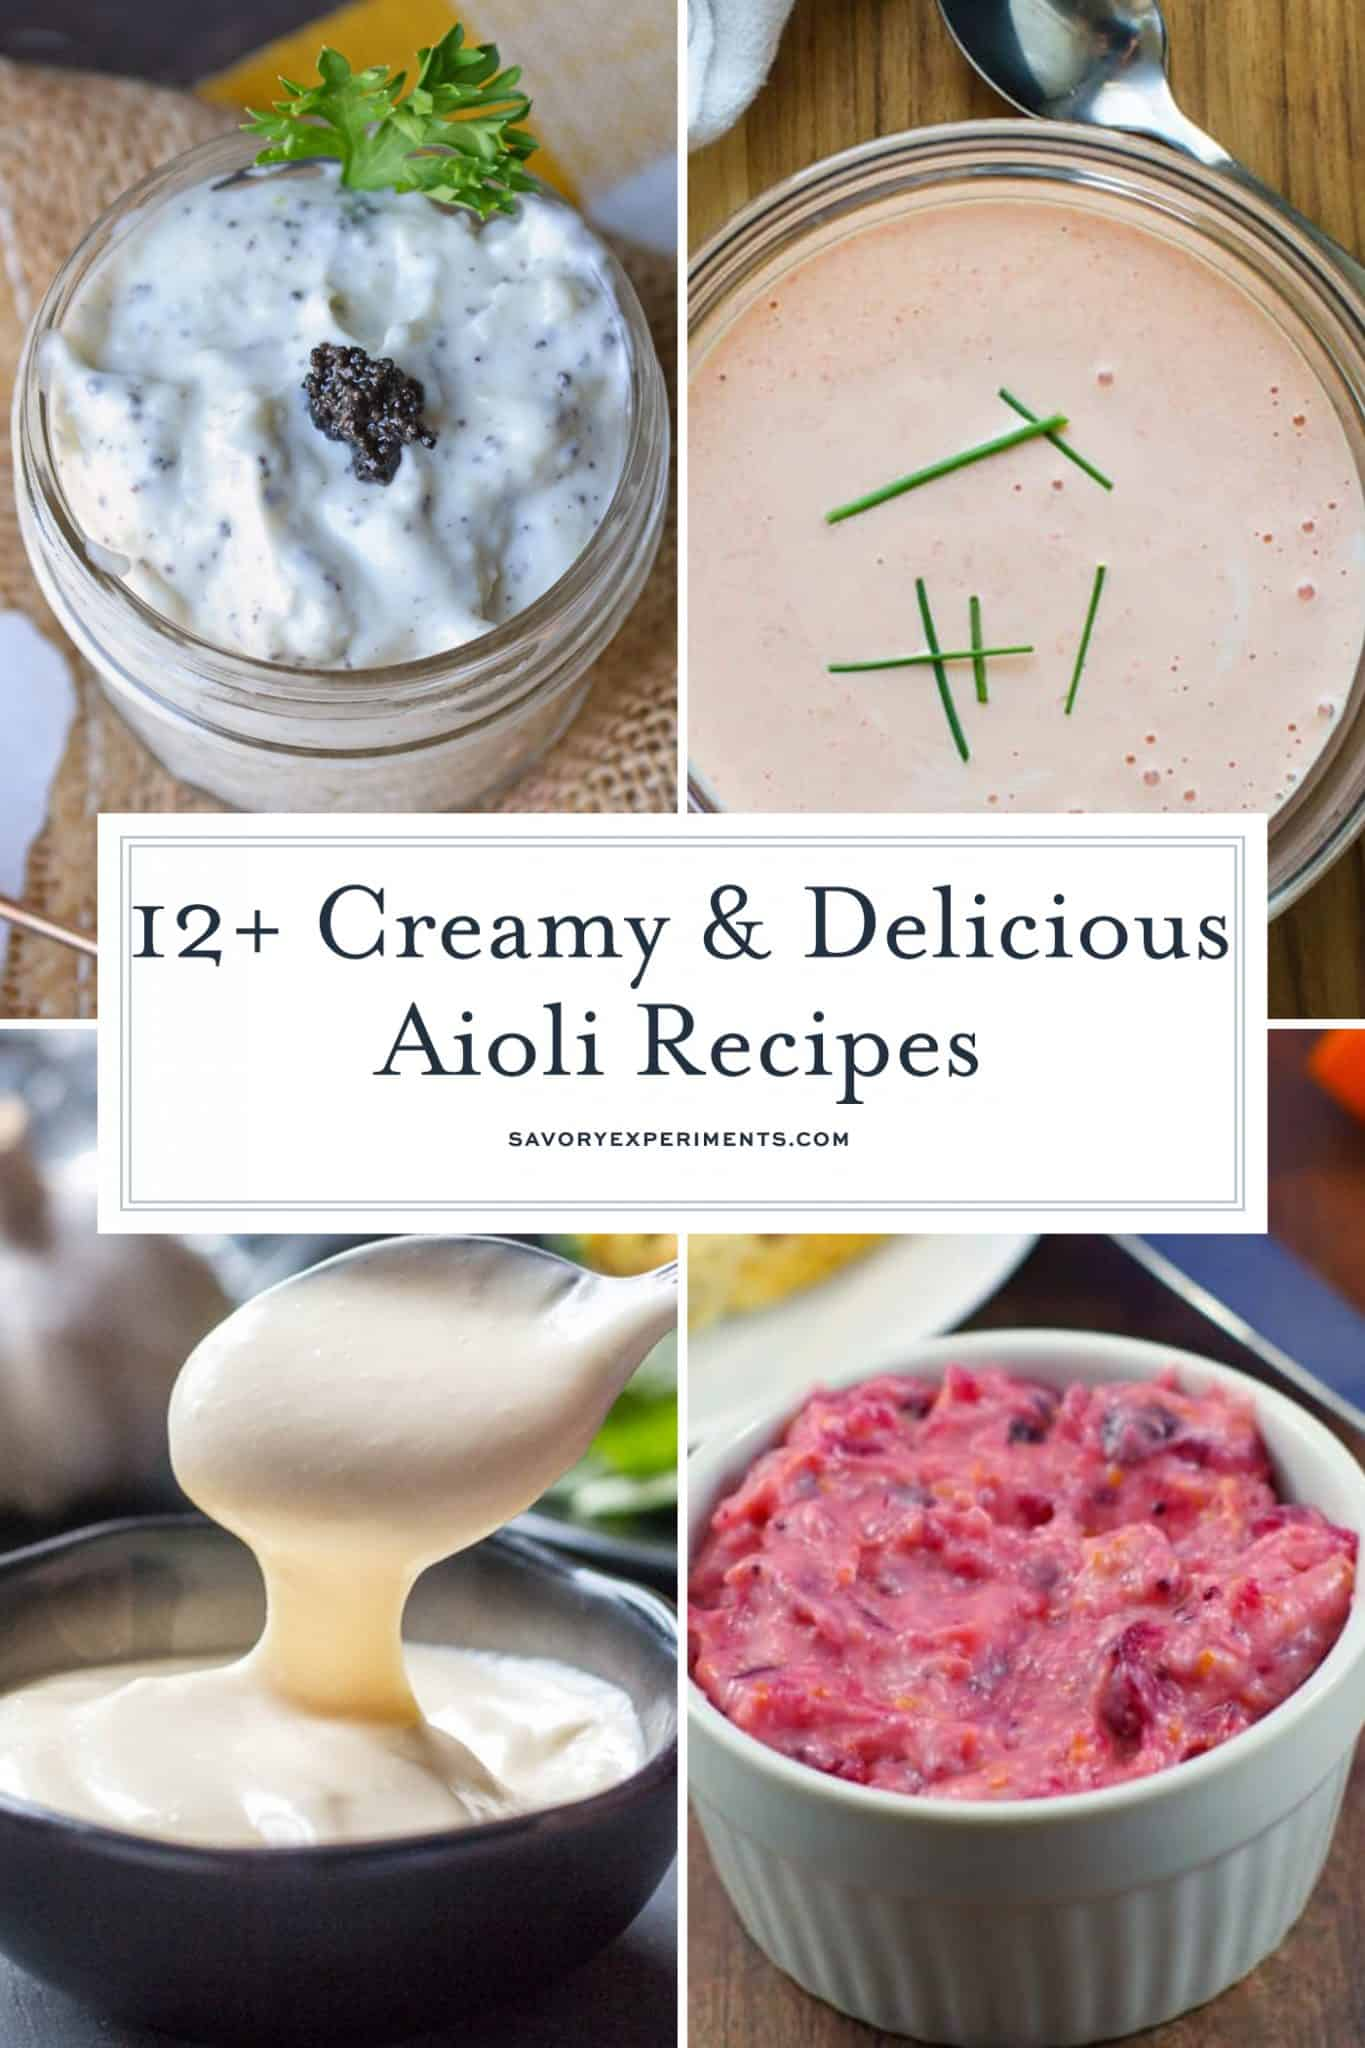 12+ Creamy and Delicious Aioli Recipes